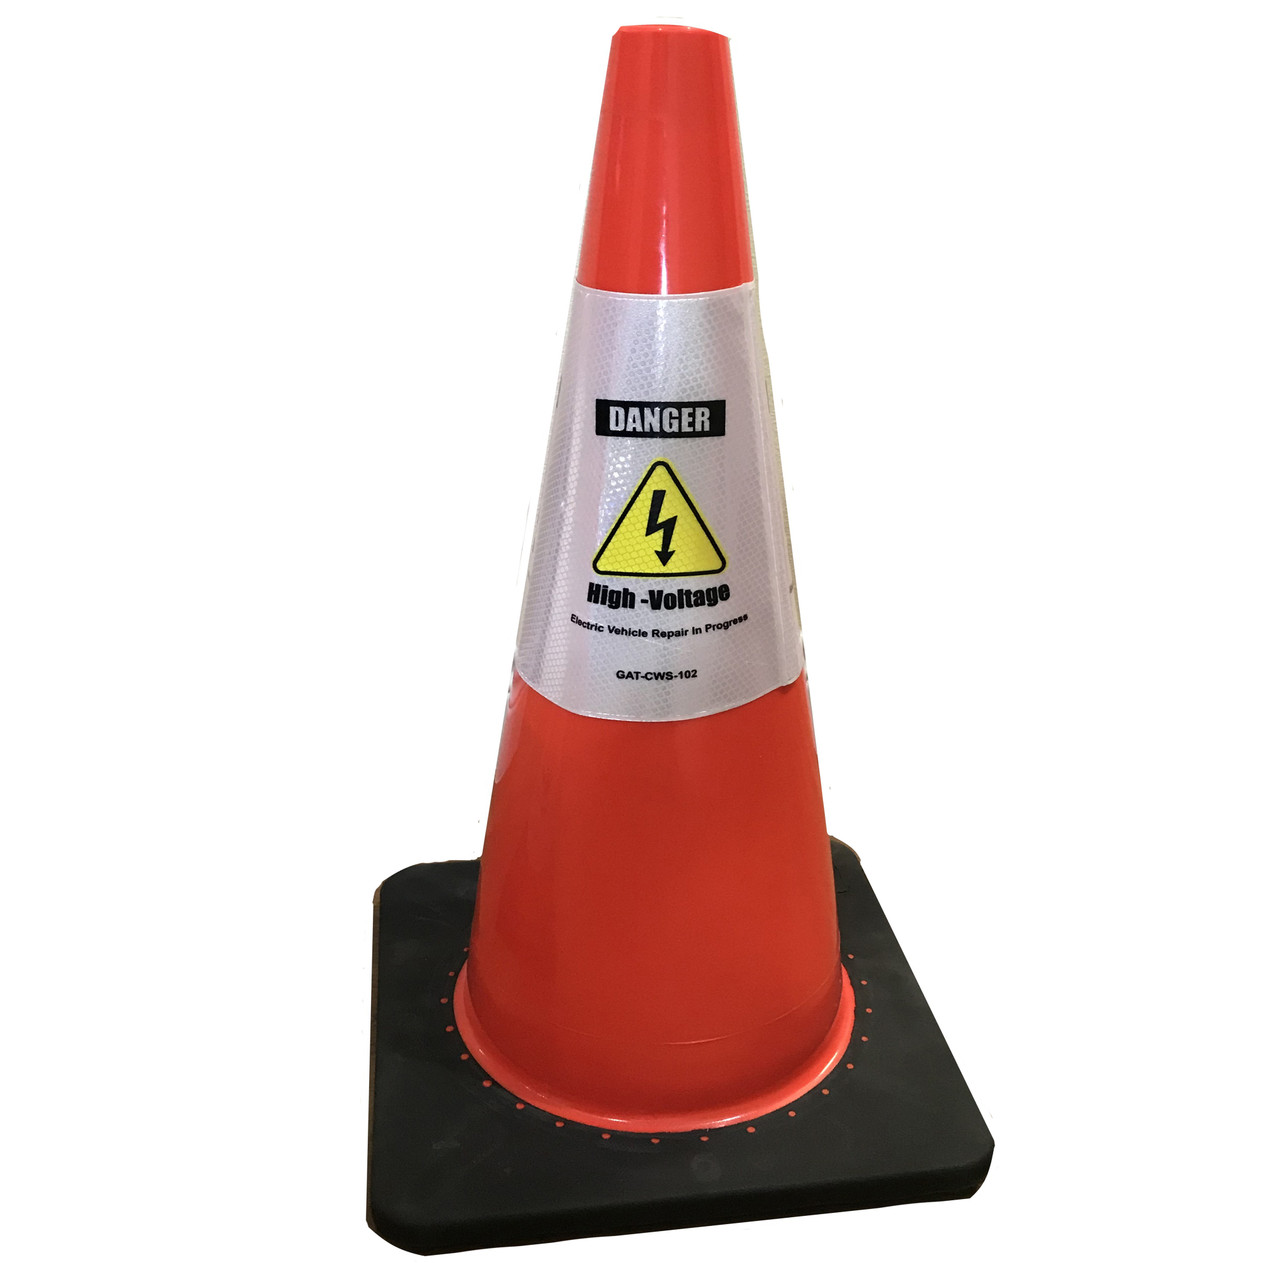 Electric Vehicle High Voltage Danger Sign - Cone Collar-6